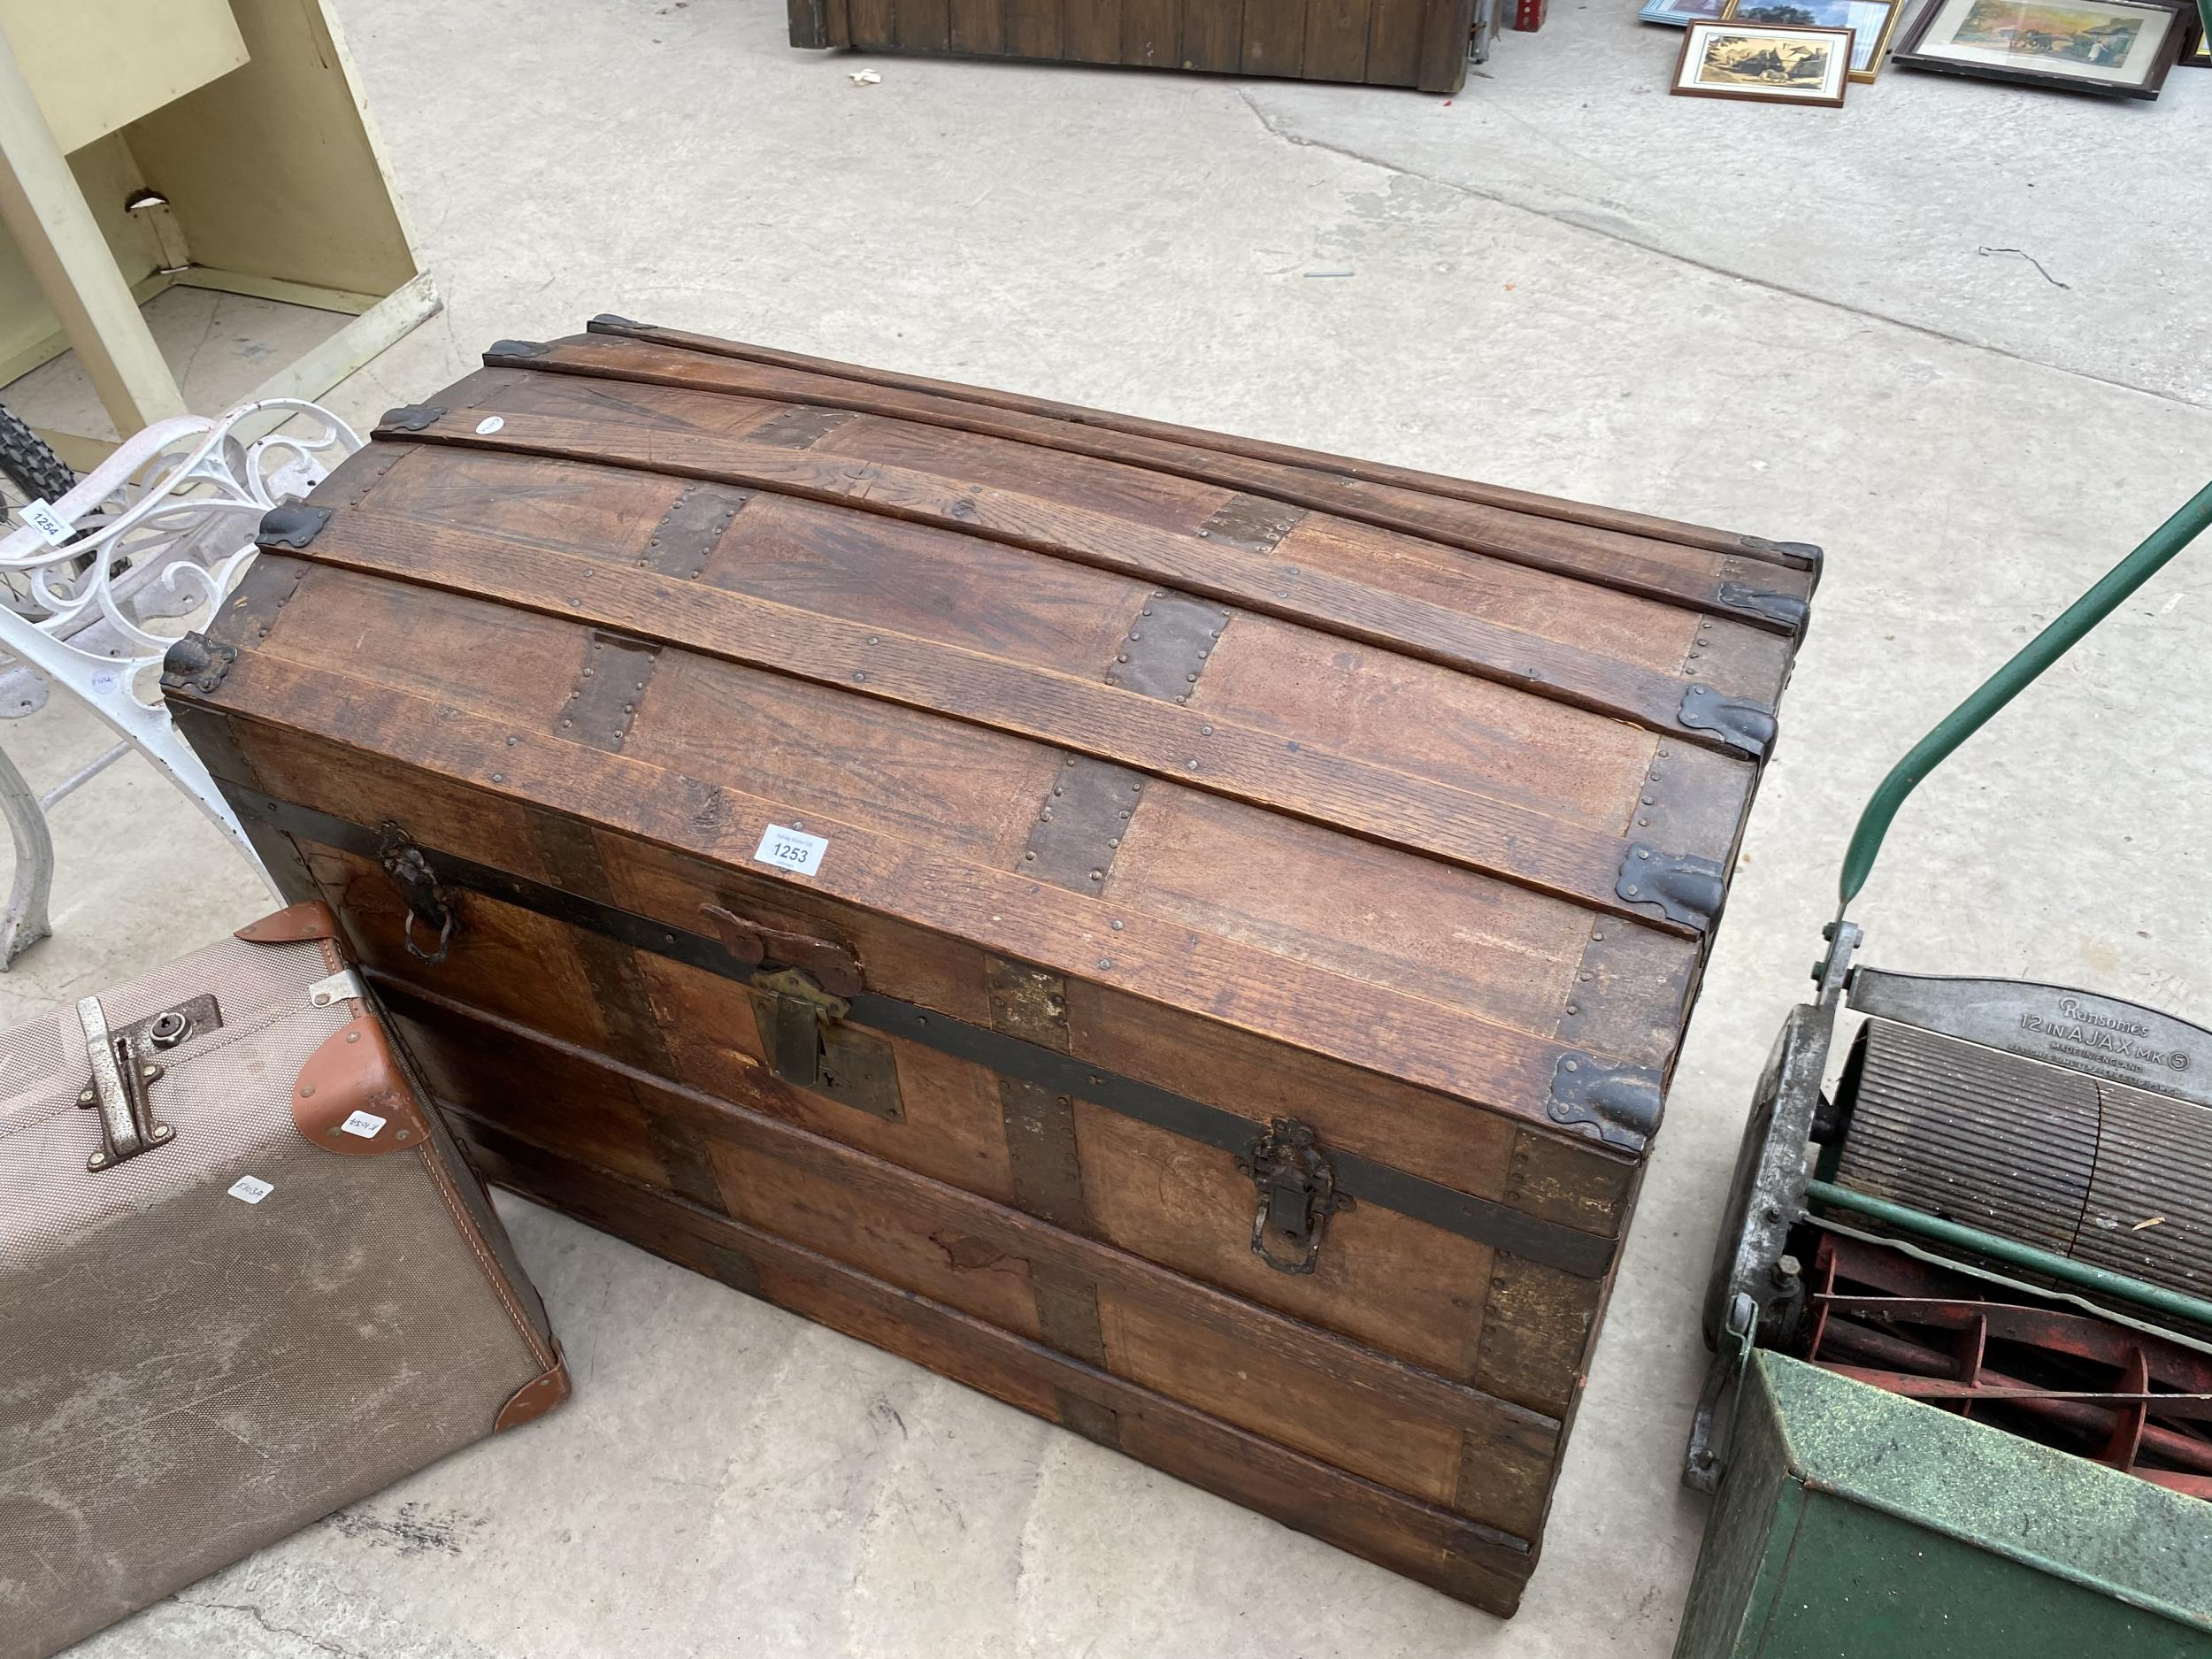 A VINTAGE WOODEN STORAGE CHEST WITH DECORATIVE WOODEN BANDING AND METAL STUD WORK AND A FURTHER - Image 2 of 4